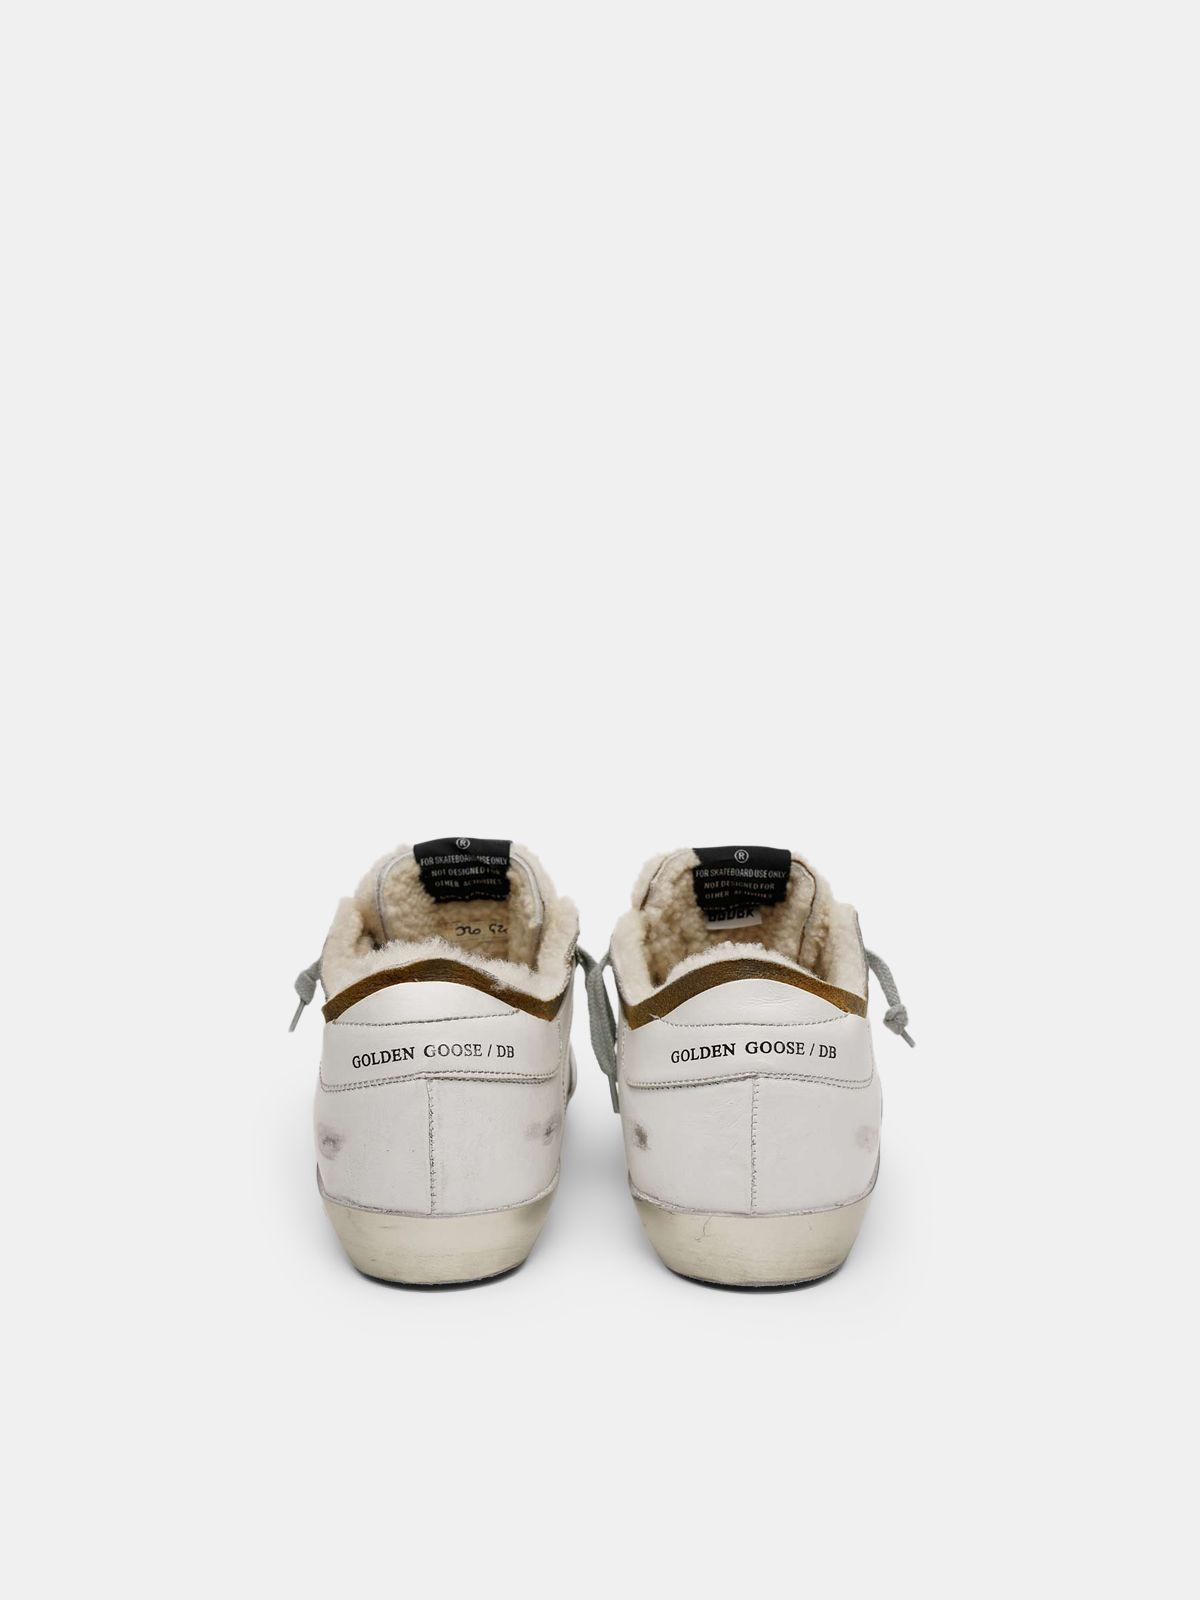 Golden Goose - Super-Star Shearling Private Edition in